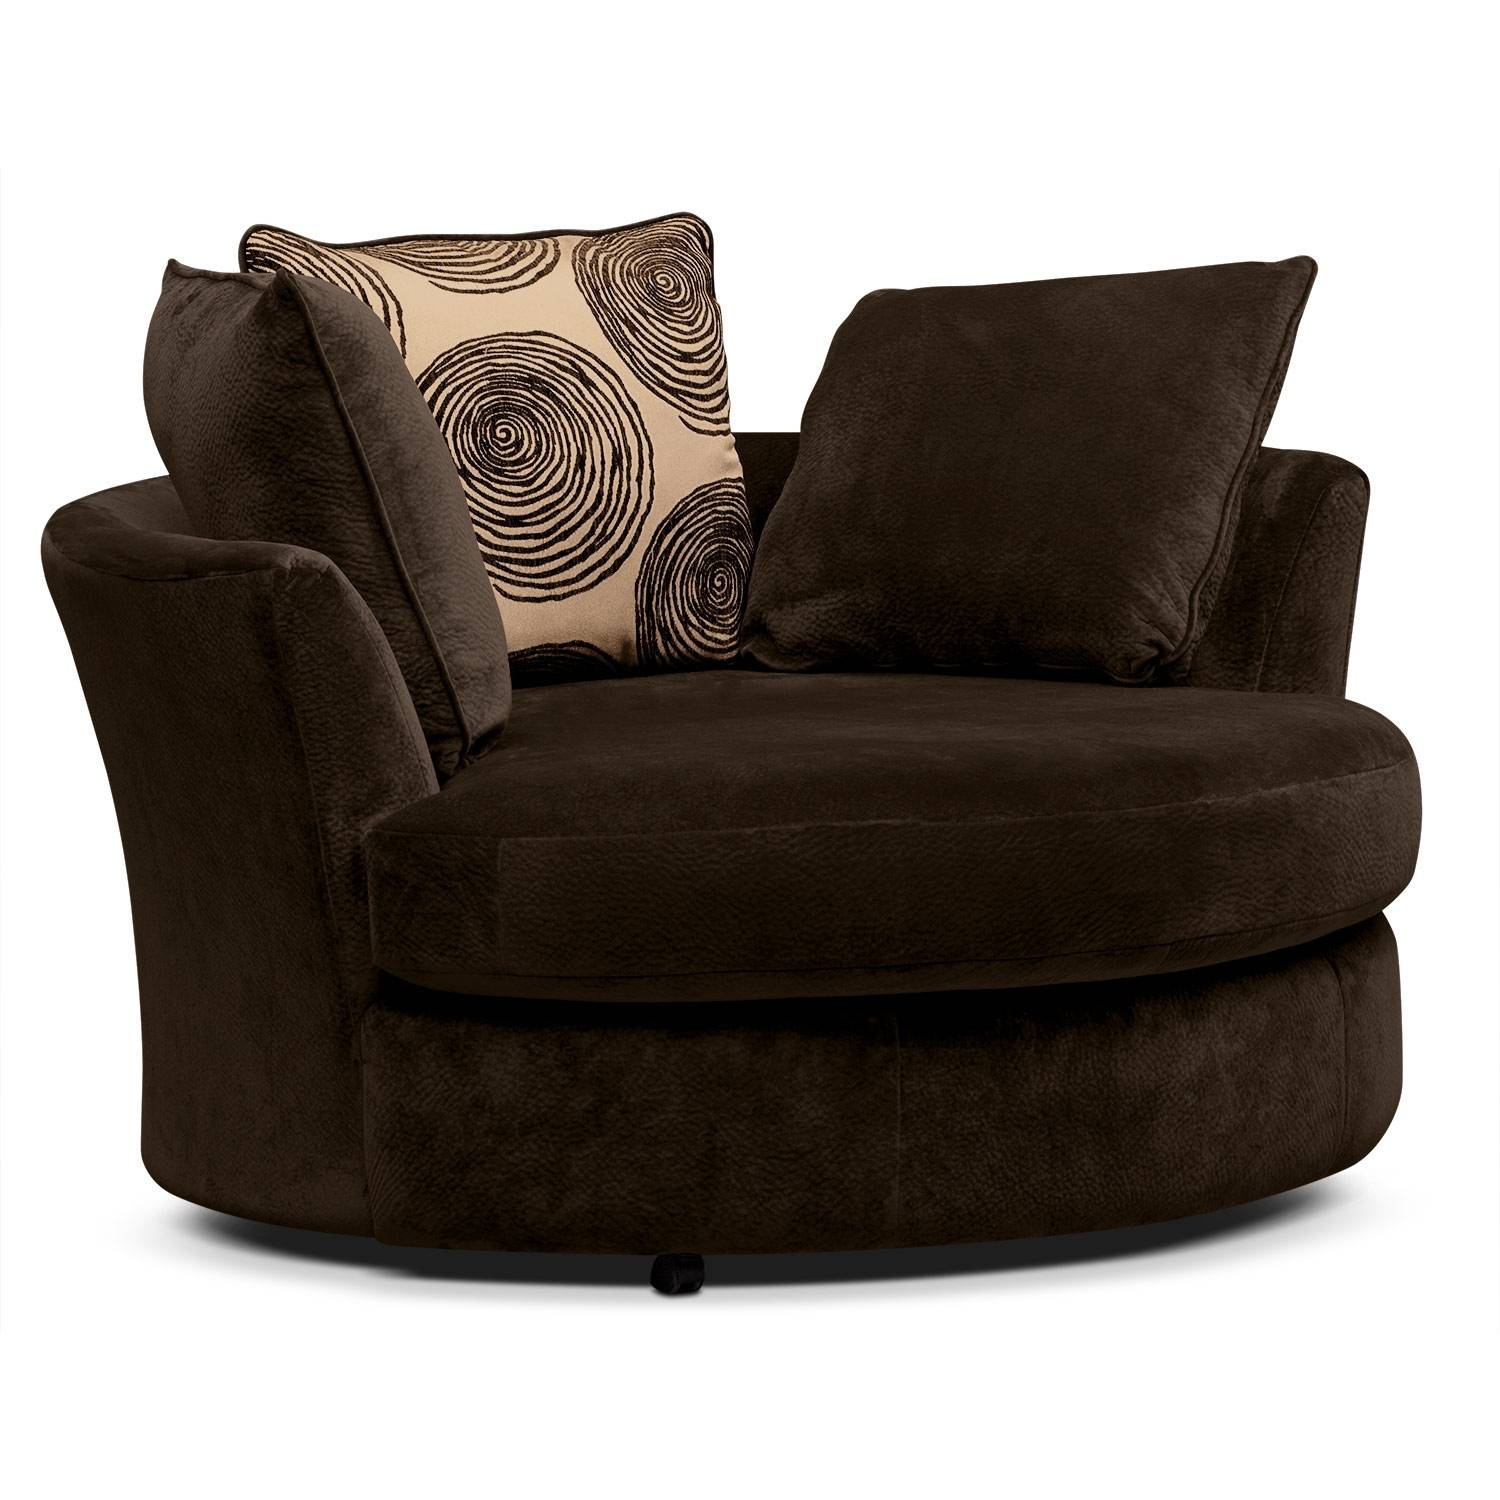 Round Sofa Chair Ikea | Tehranmix Decoration throughout Spinning Sofa Chairs (Image 16 of 30)